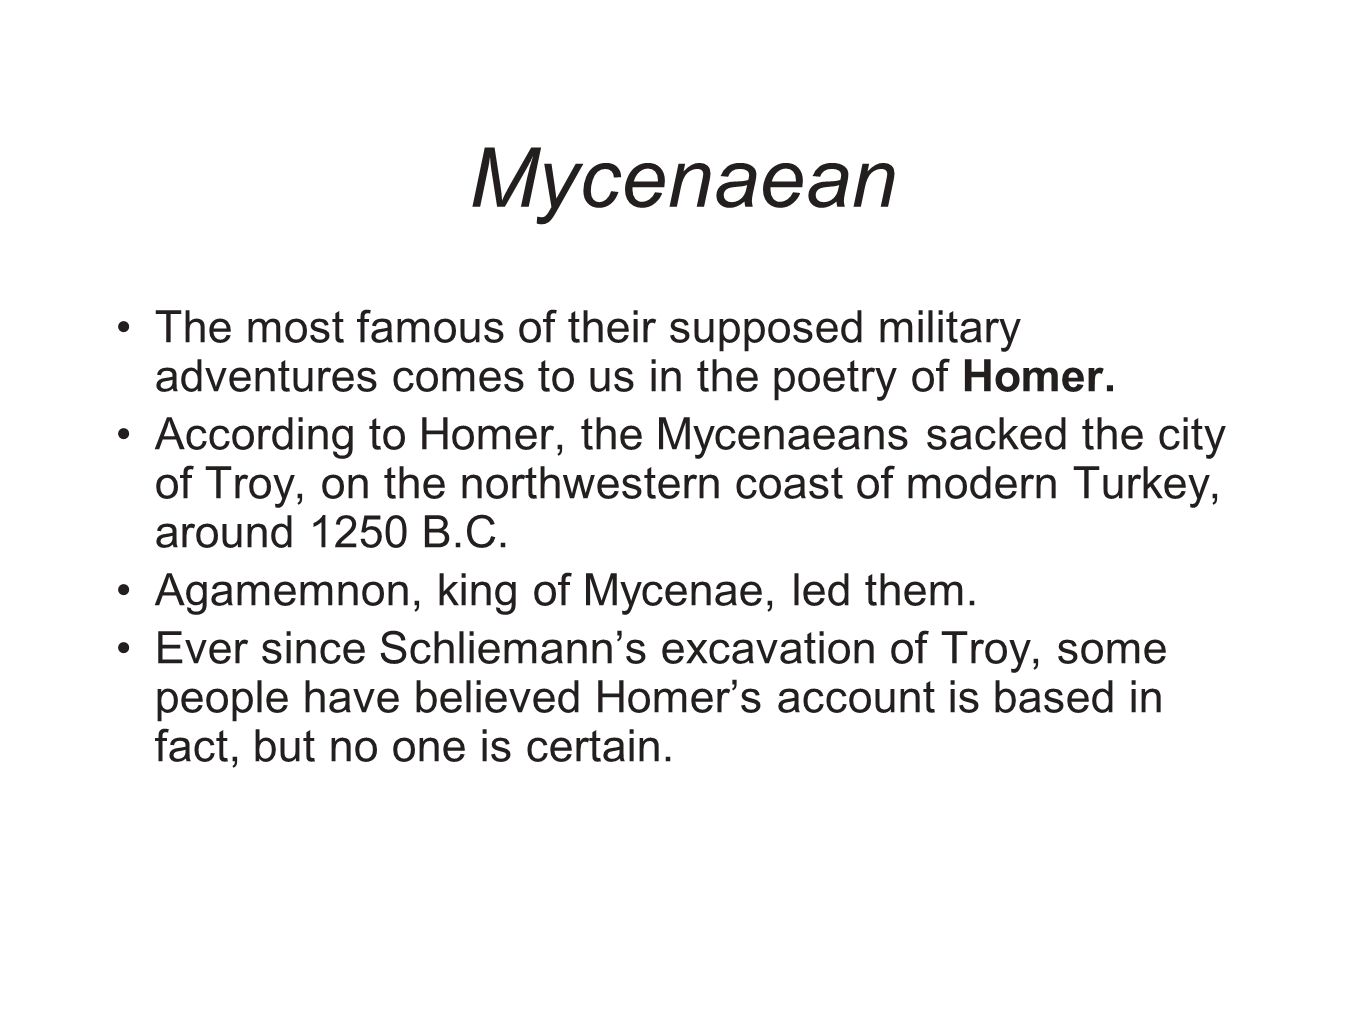 Mycenaean The most famous of their supposed military adventures comes to us in the poetry of Homer.